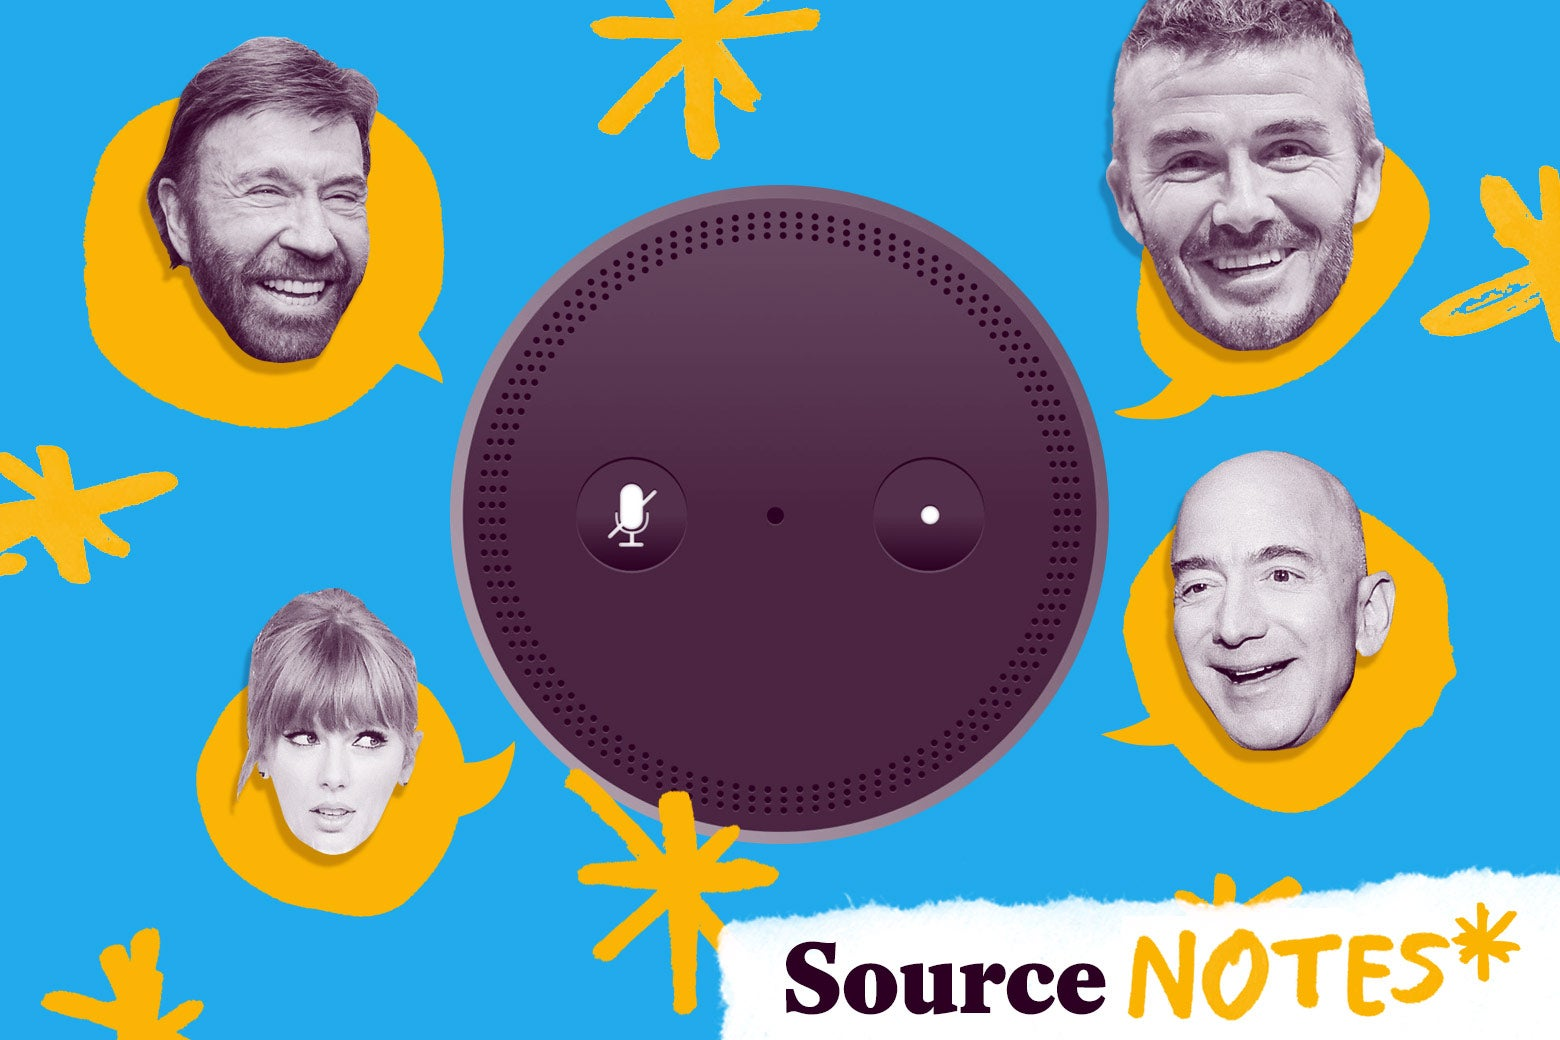 An Echo with speech bubbles featuring the heads of celebrities.